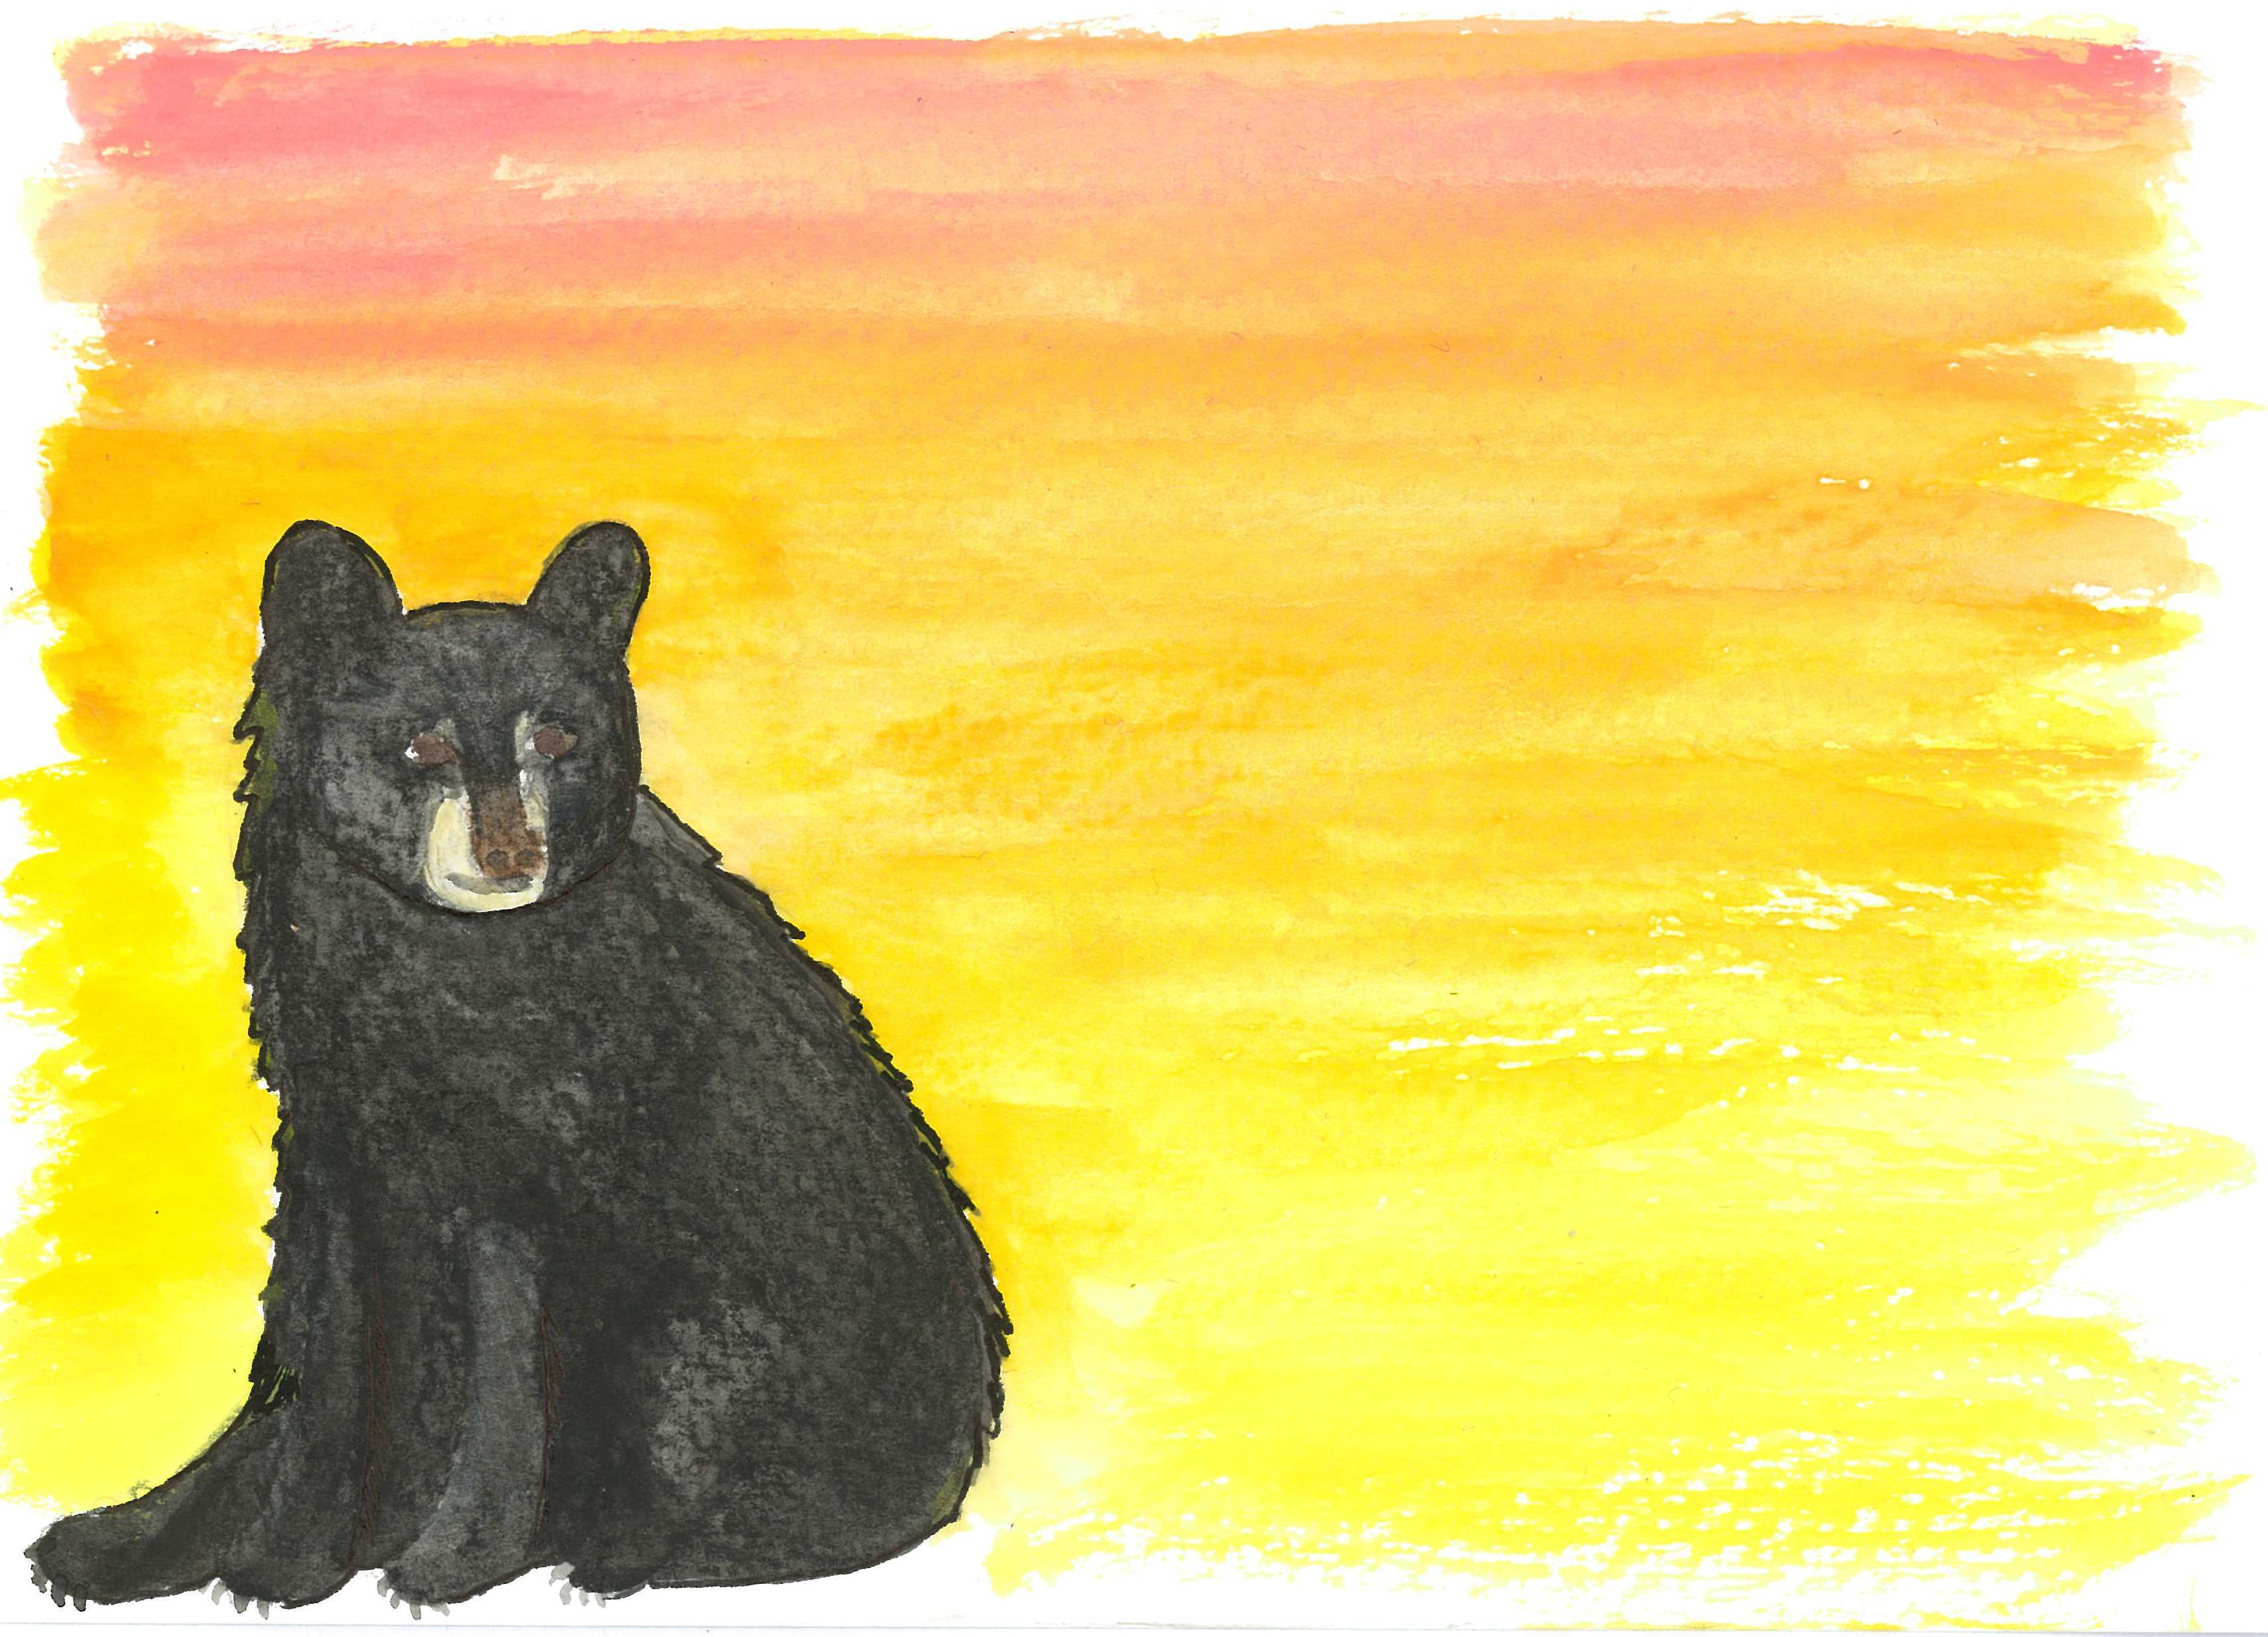 American Black Bear © KIT West Designs